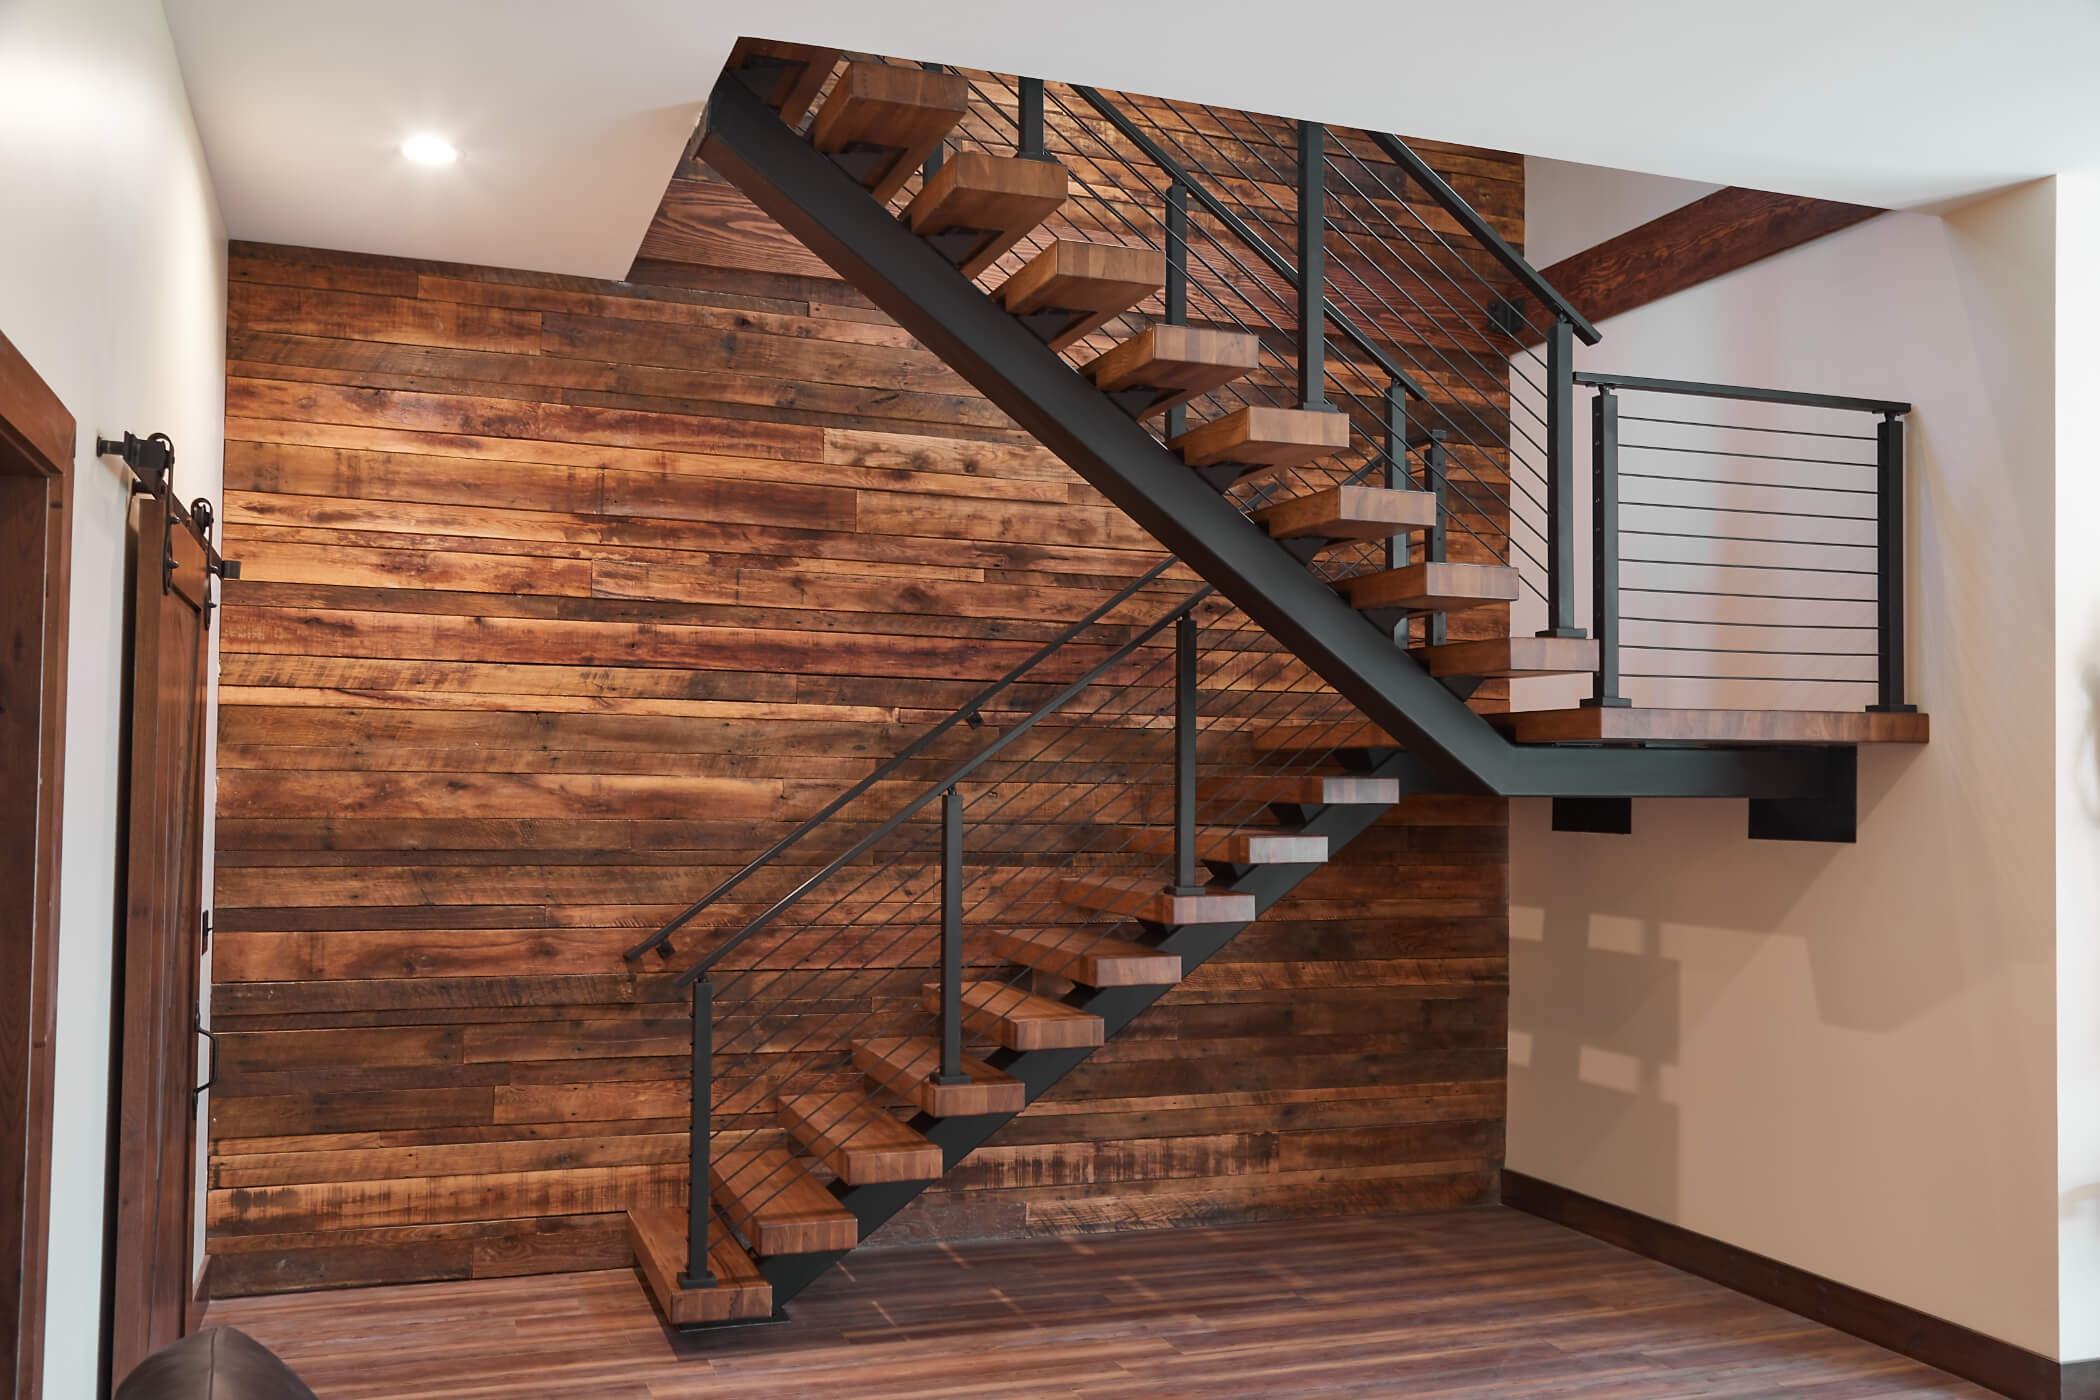 Steel Stairs Prefabricated Diy Metal Stairs Viewrail | Iron And Wood Staircase | Internal | Farmhouse | Free Standing Wood | Modern | Design